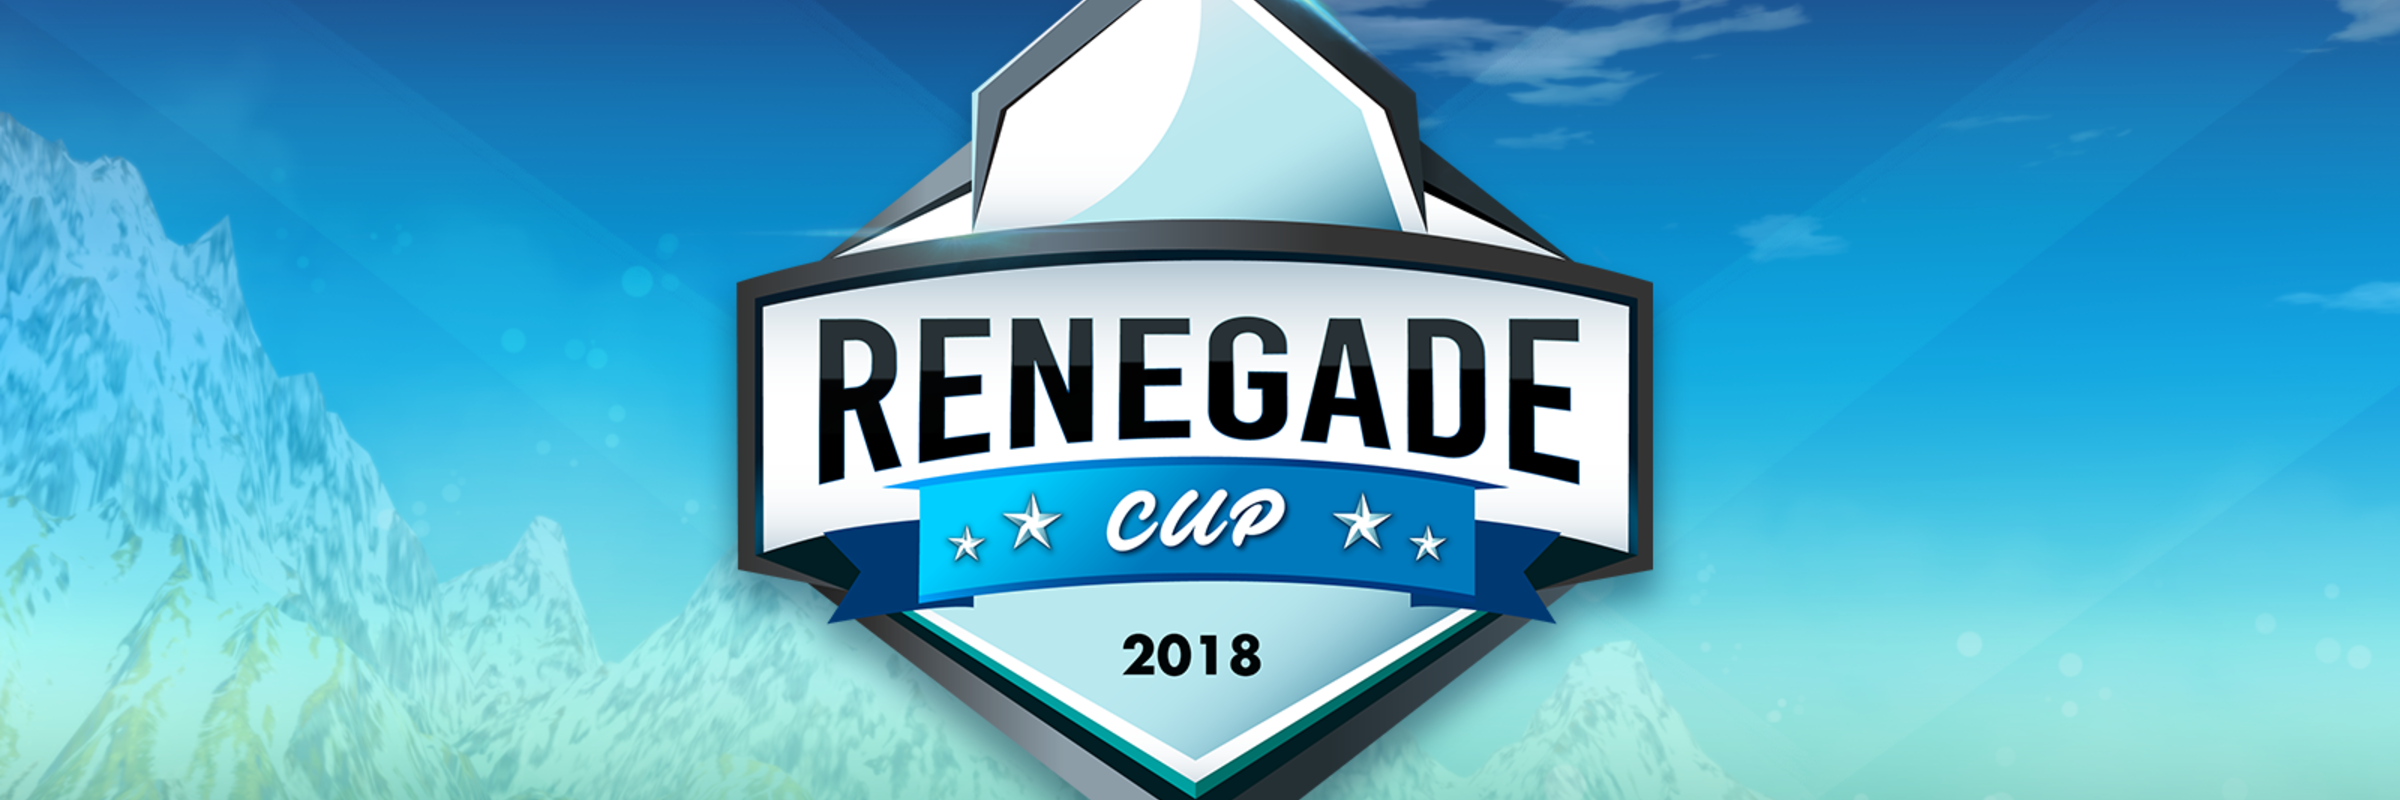 NA Renegade Cup Finals: Teams to Watch Image